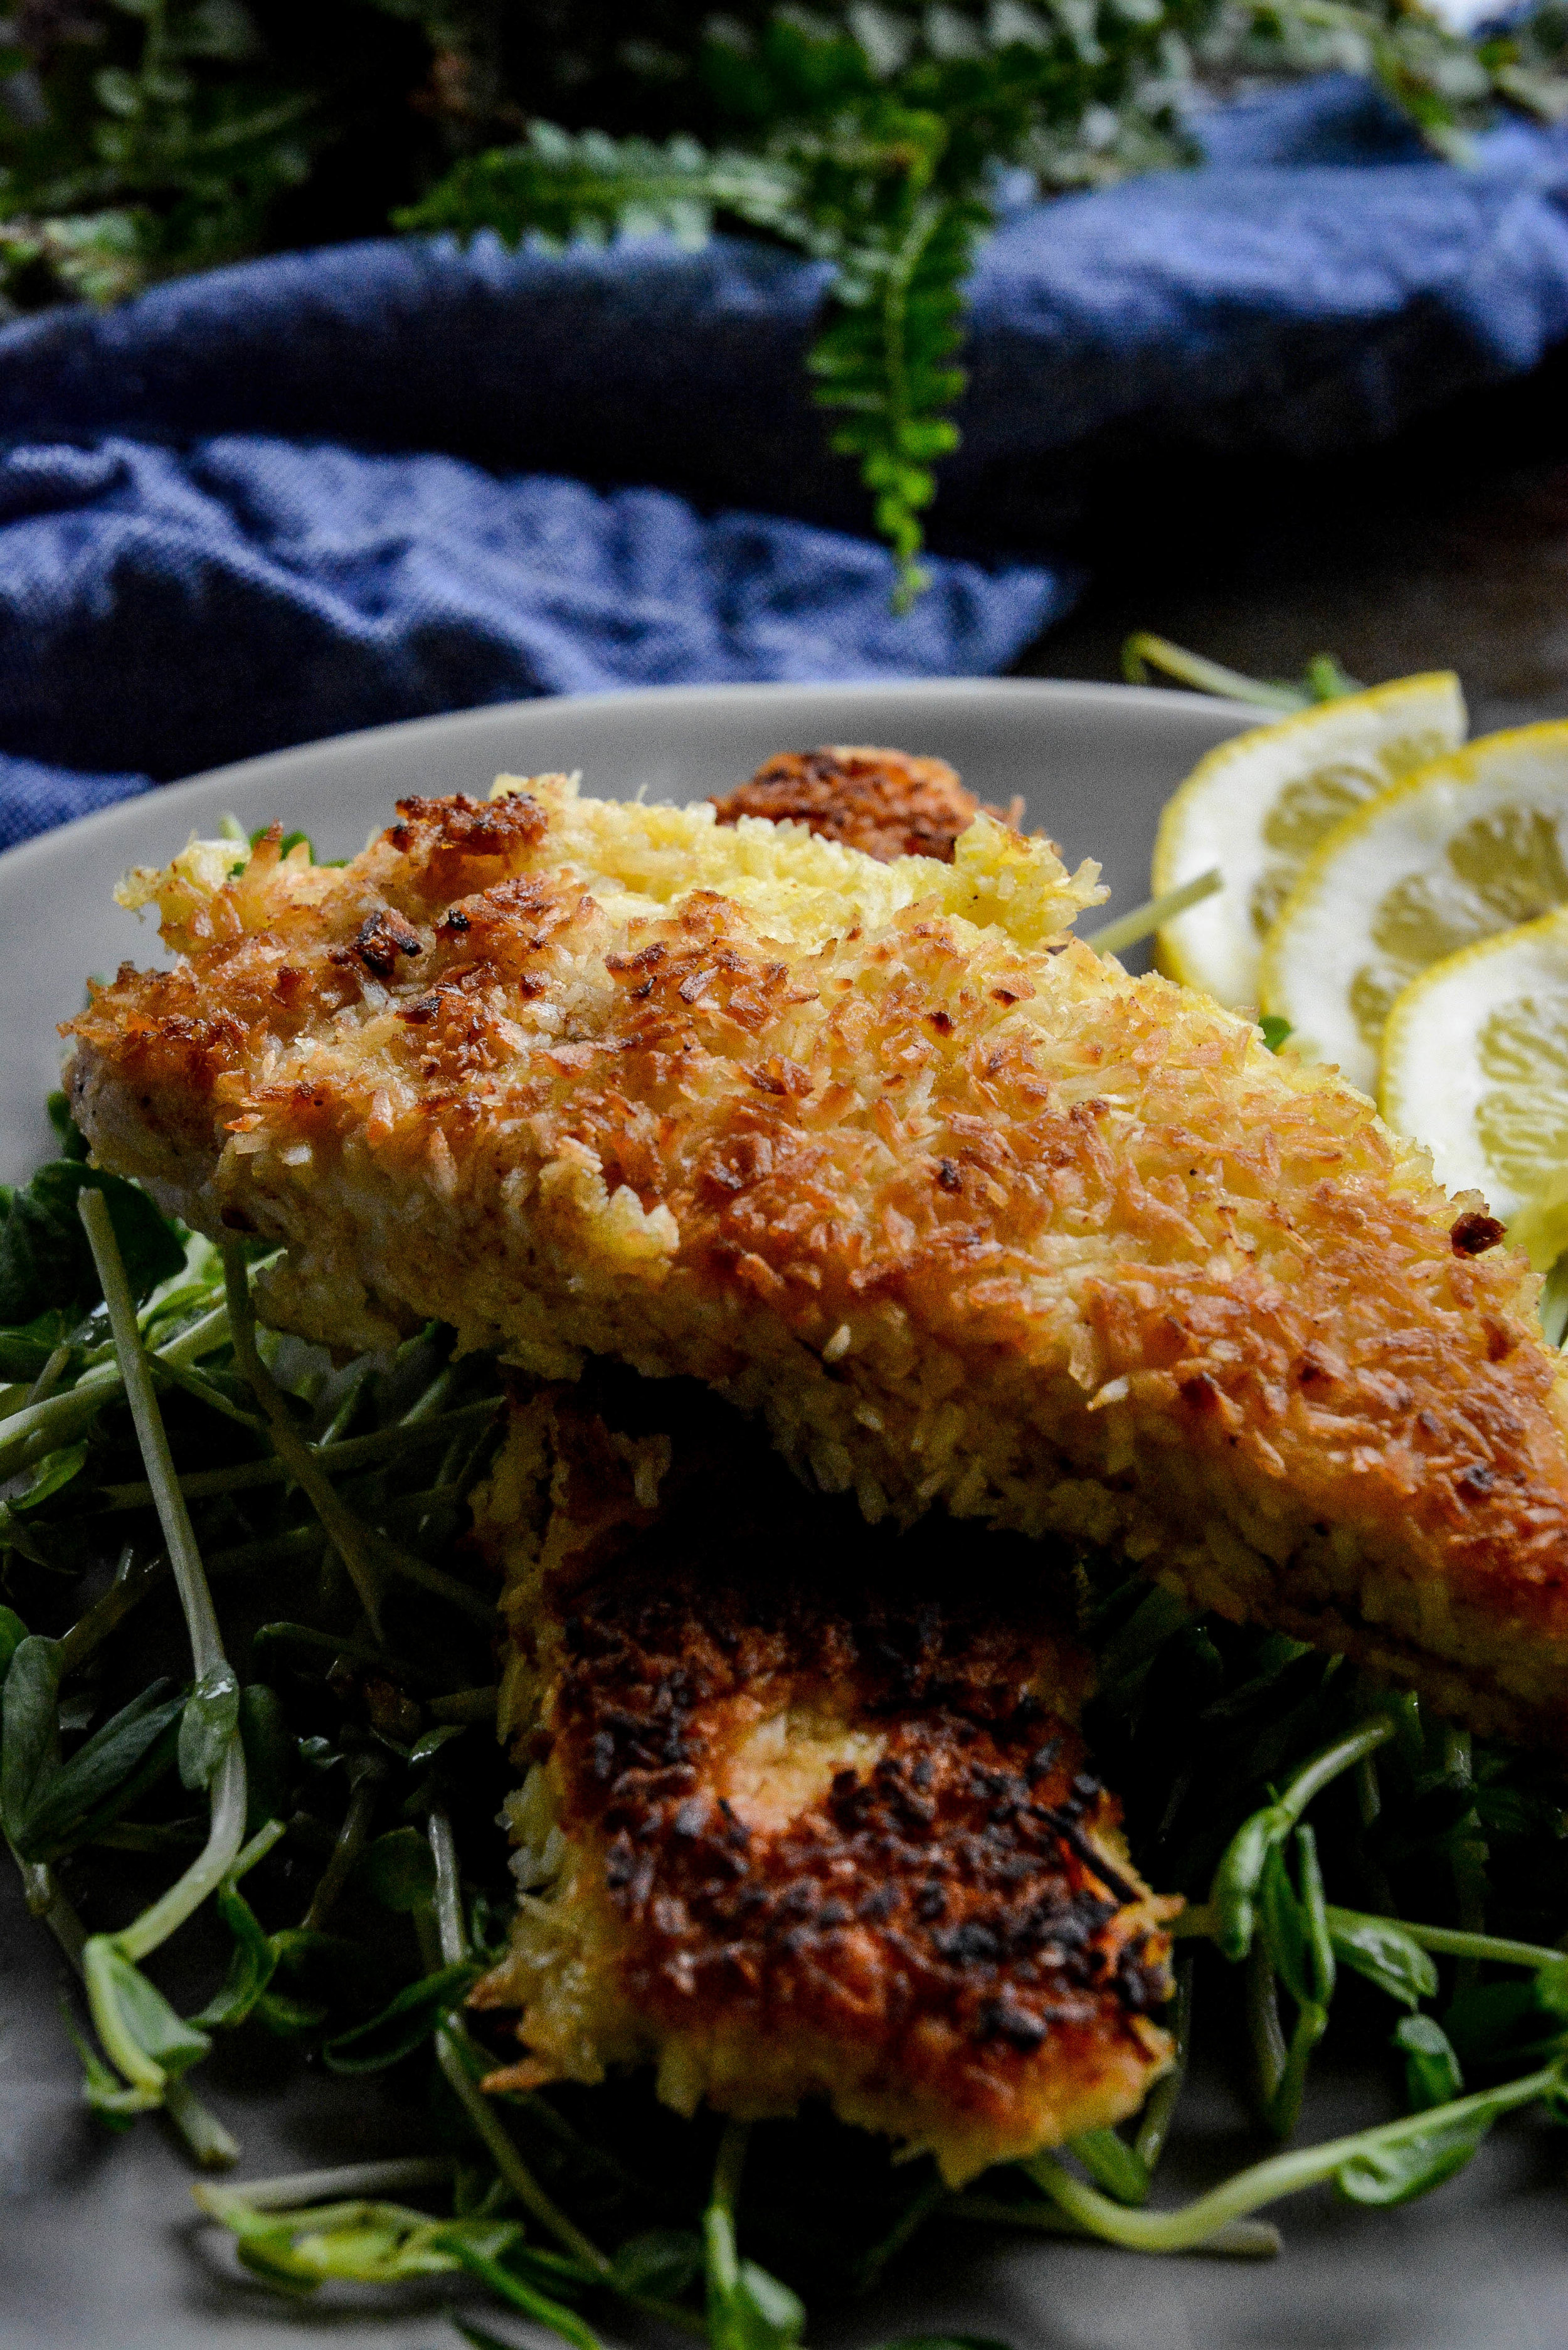 coconut crusted chicken tenders with honey mustard sauce